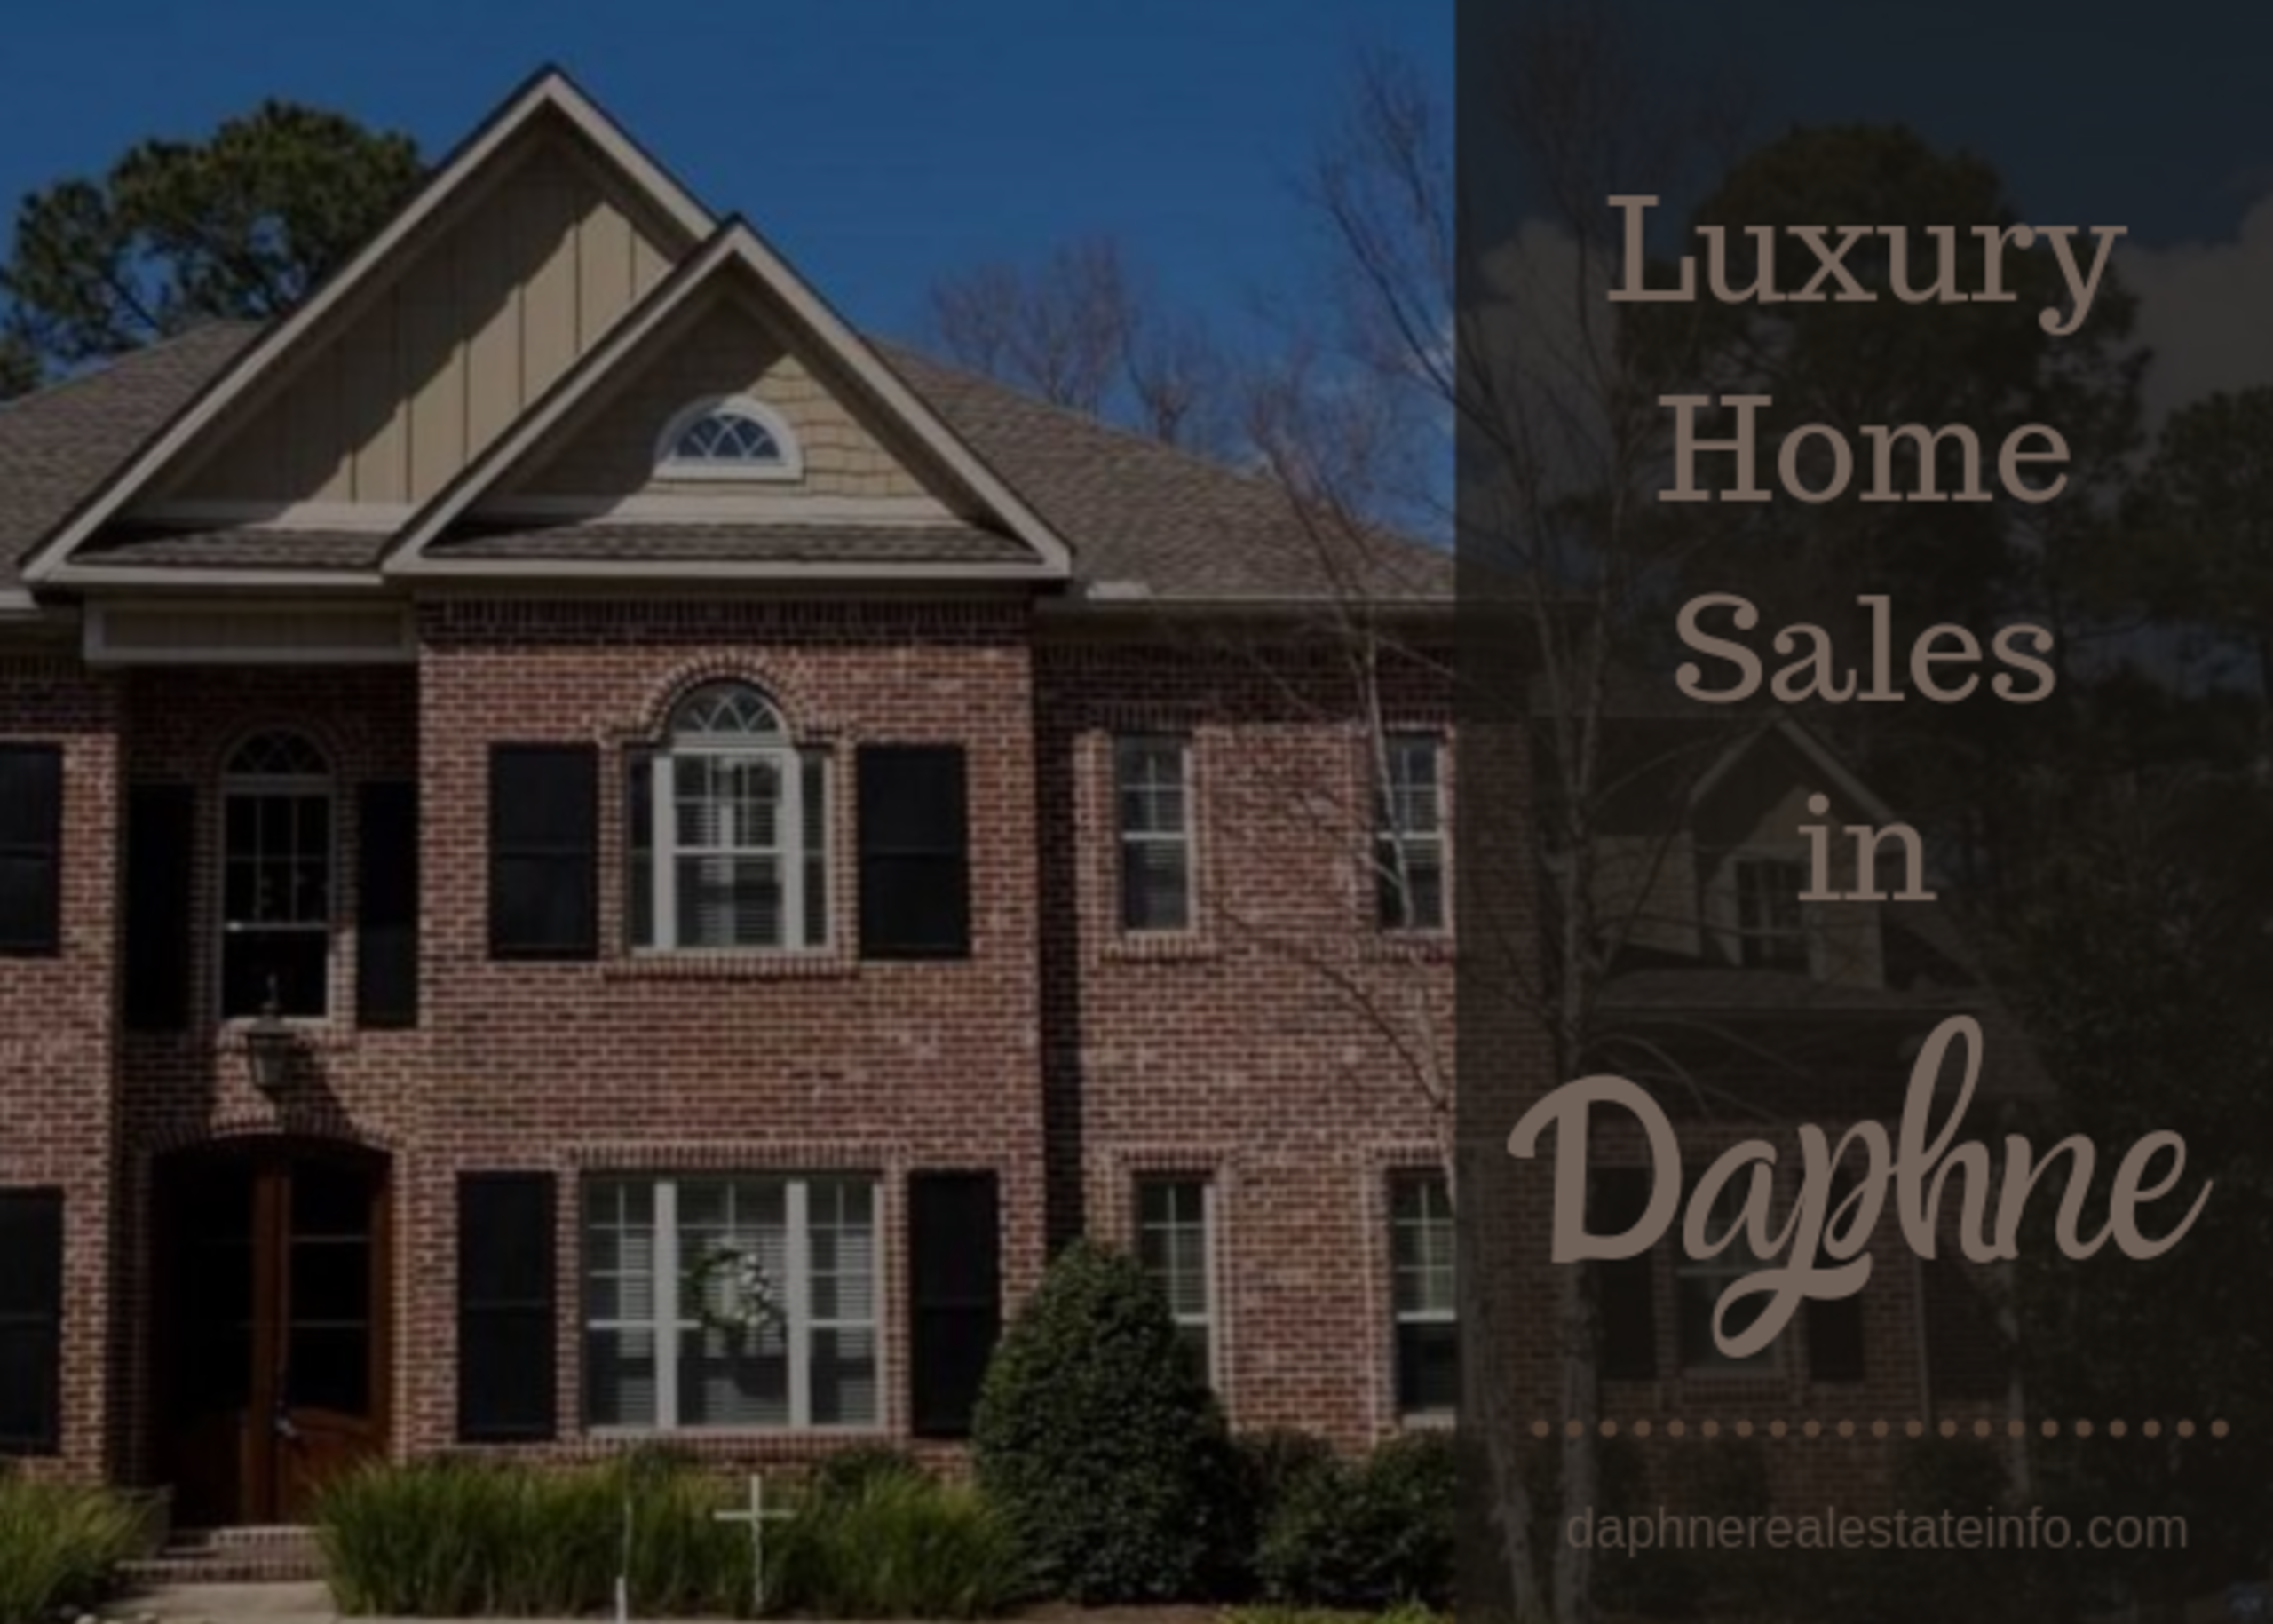 Luxury Home Sales in Daphne – September 2019